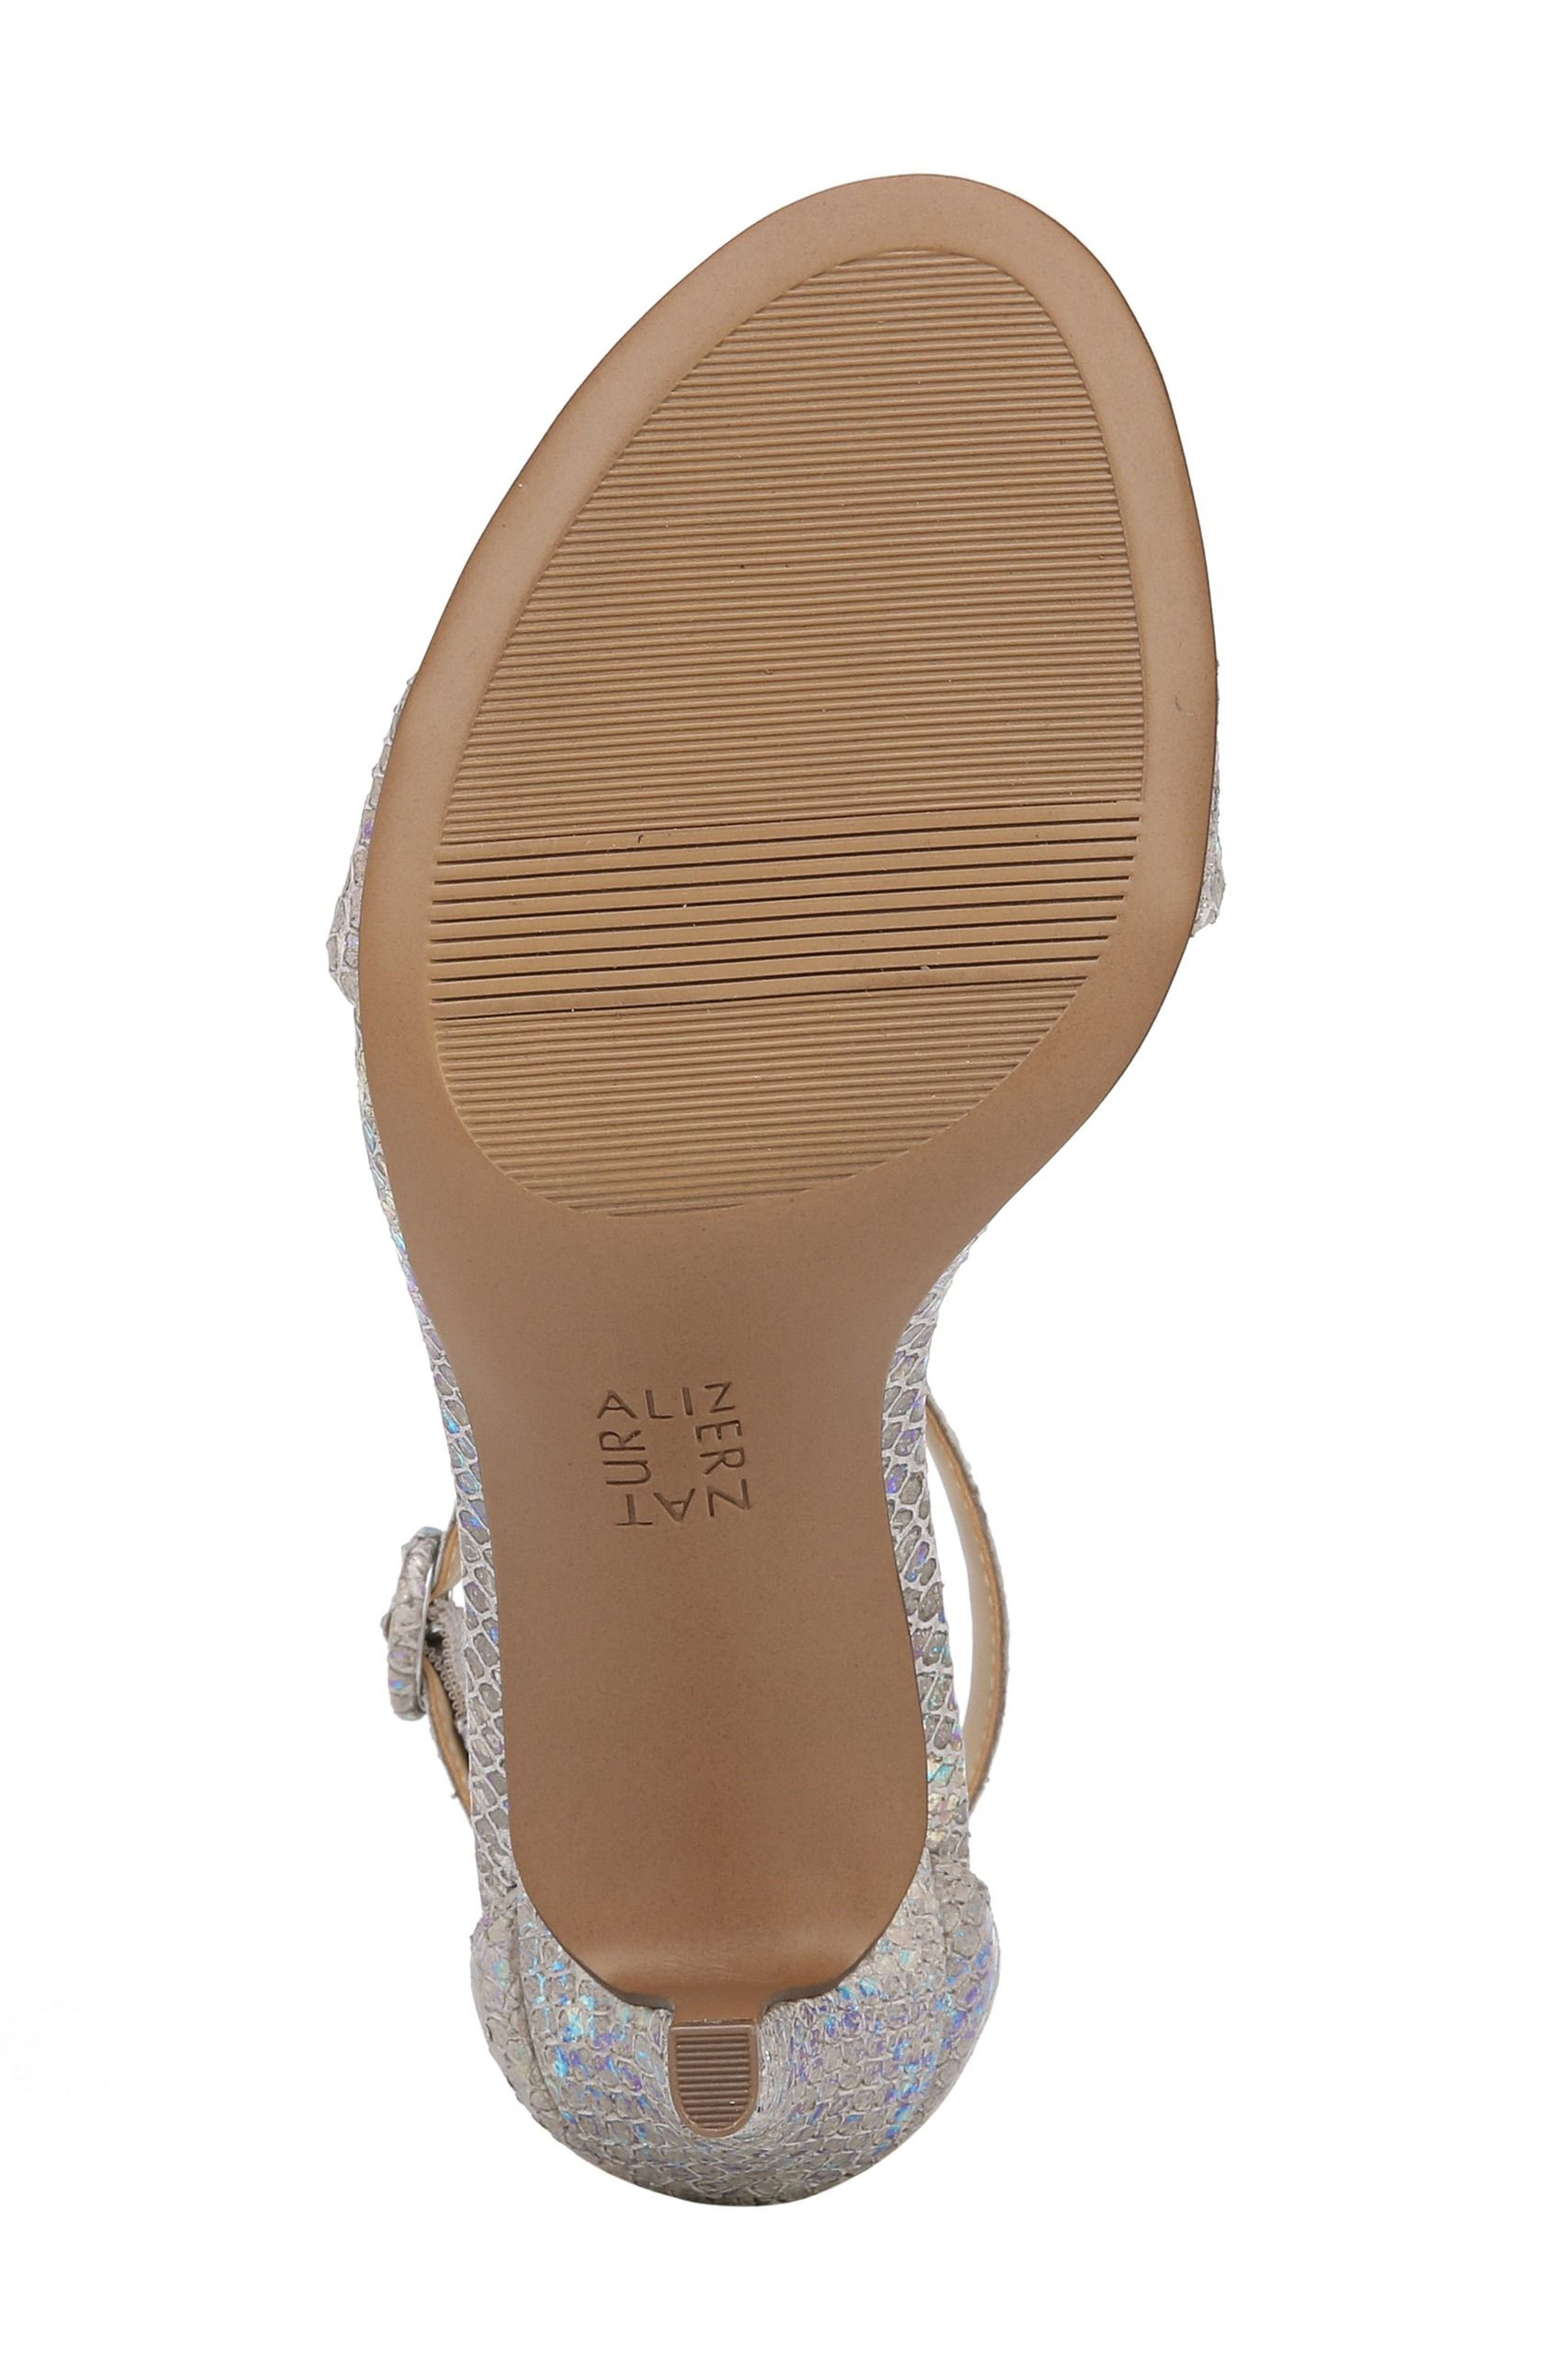 Kinsley Sandal,                             Alternate thumbnail 6, color,                             Silver Snake Leather